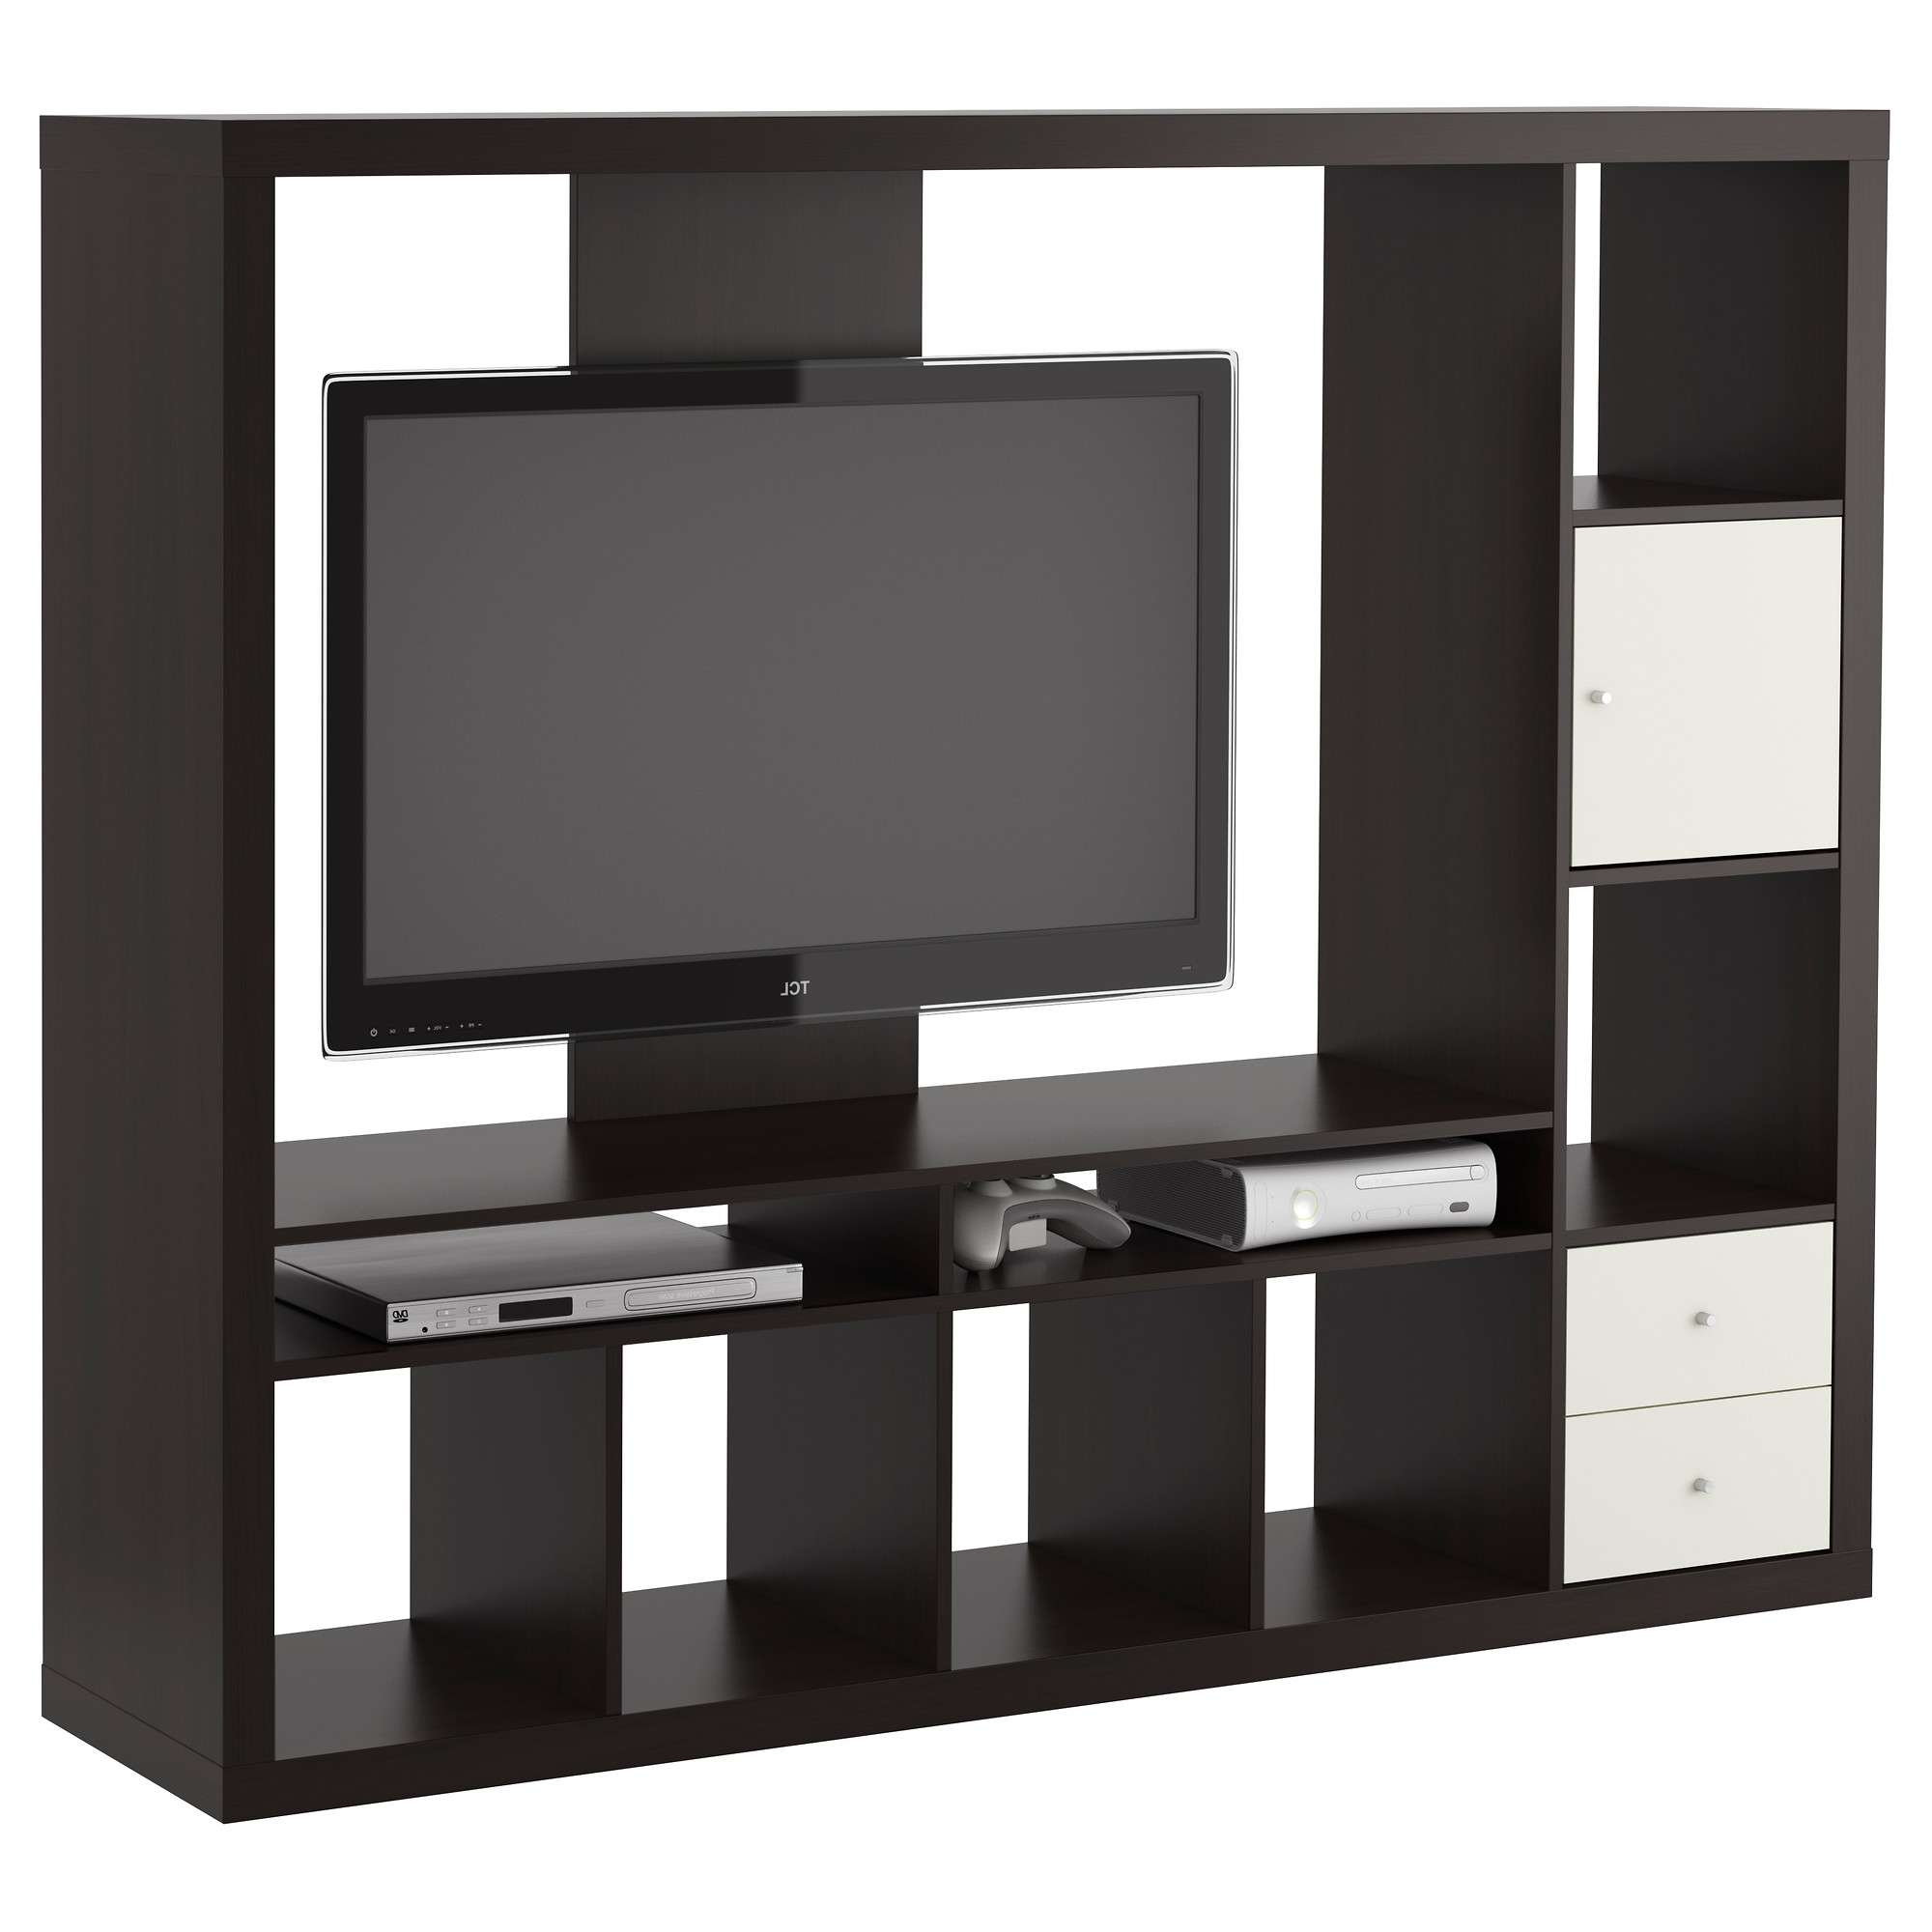 Bedroom Design : Wonderful Corner Tv Stand With Mount Dark Wood Tv Within Wooden Tv Stands And Cabinets (View 2 of 15)